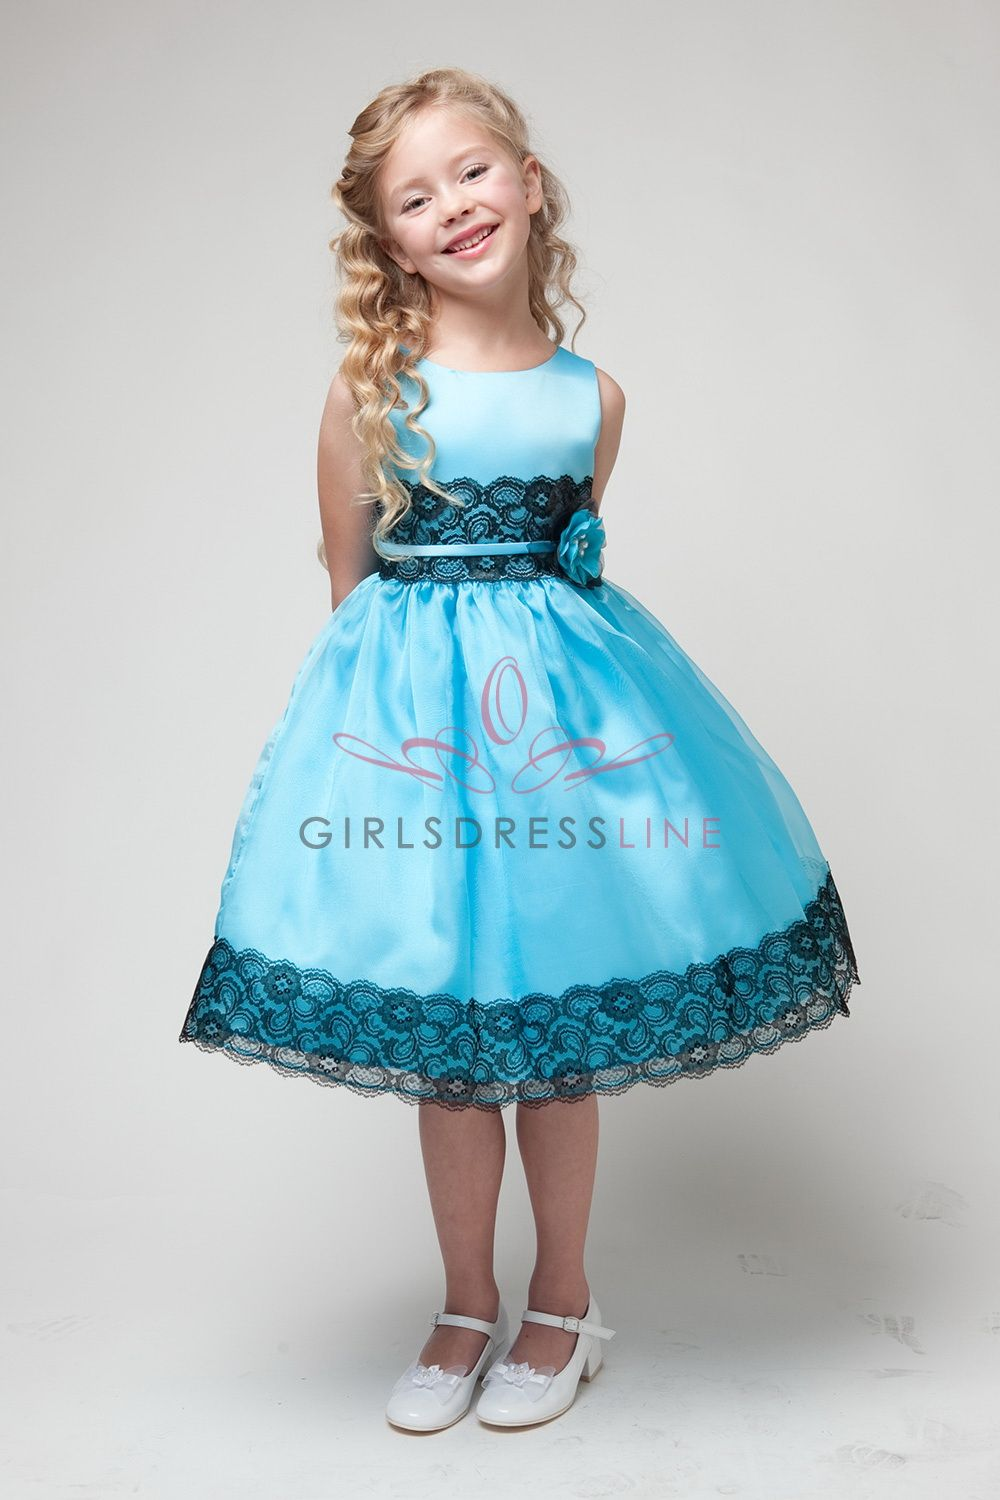 Turquoise/Black Satin Lace Flower Girl Dress JD1225-TB $44.95 on www ...